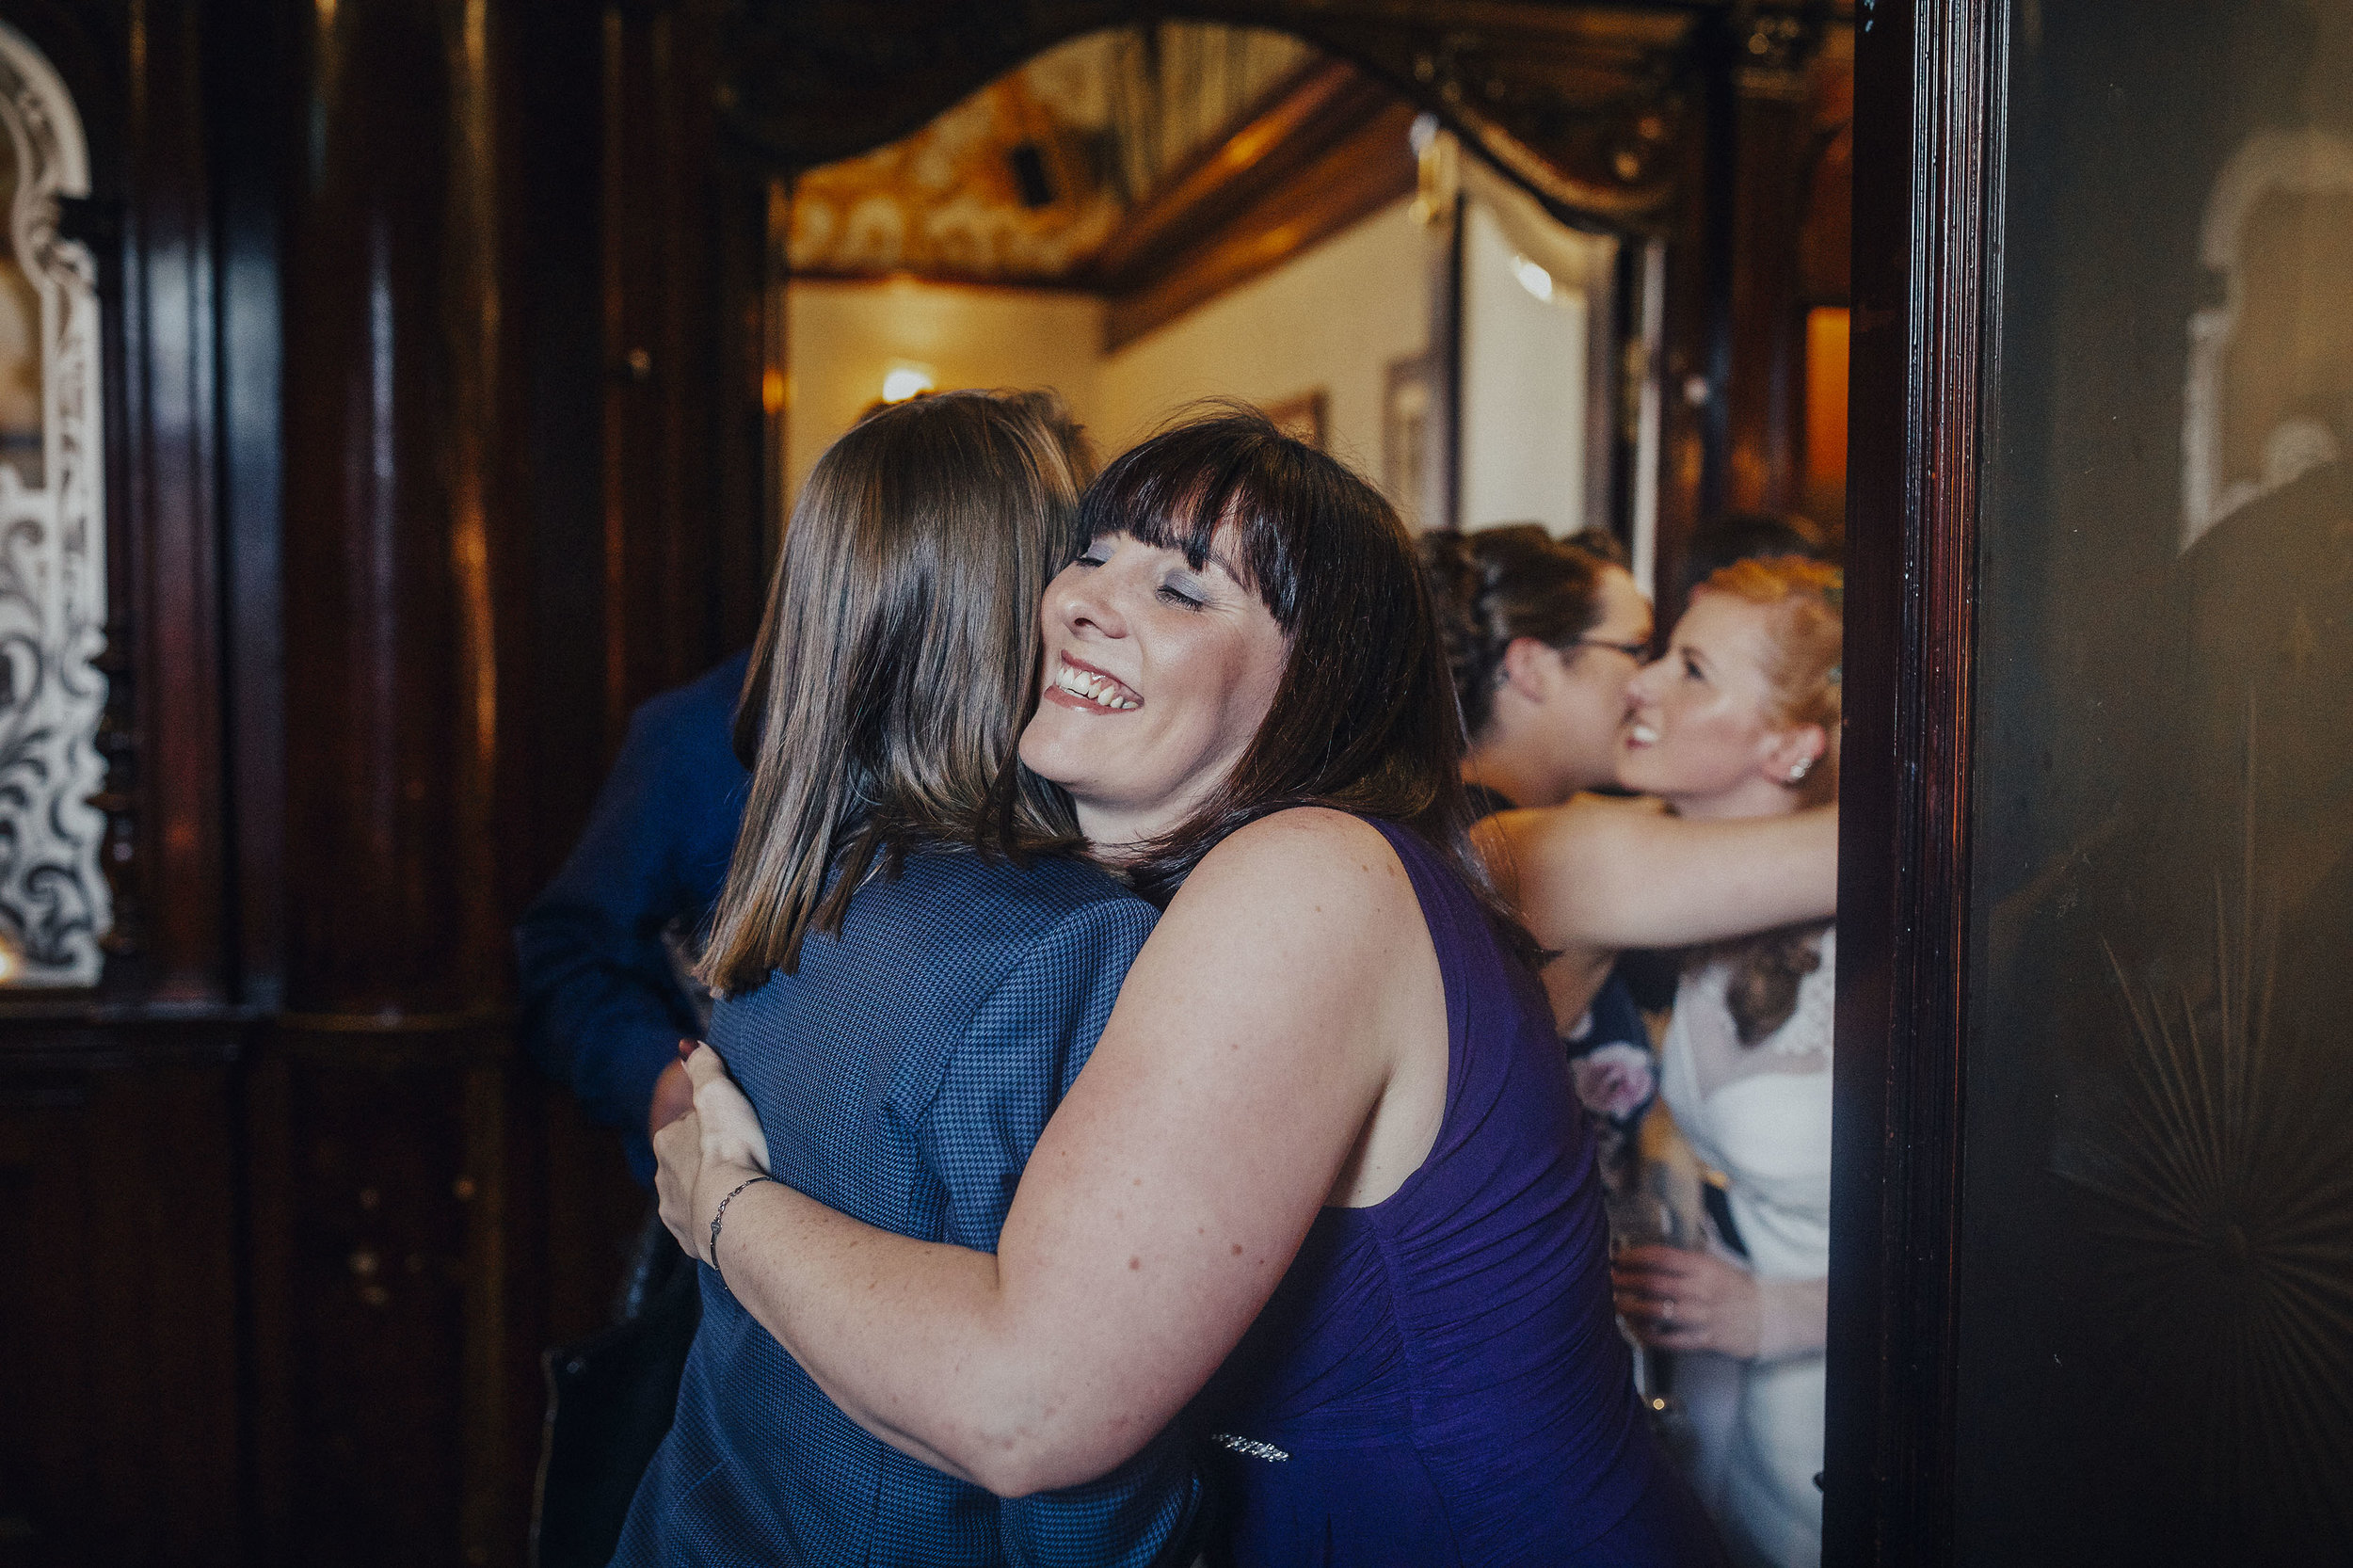 SAME_SEX_WEDDING_PHOTOGRAPHER_SLOANS_GLASGOW_PJ_PHILLIPS_PHOTOGRAPHY_50.jpg